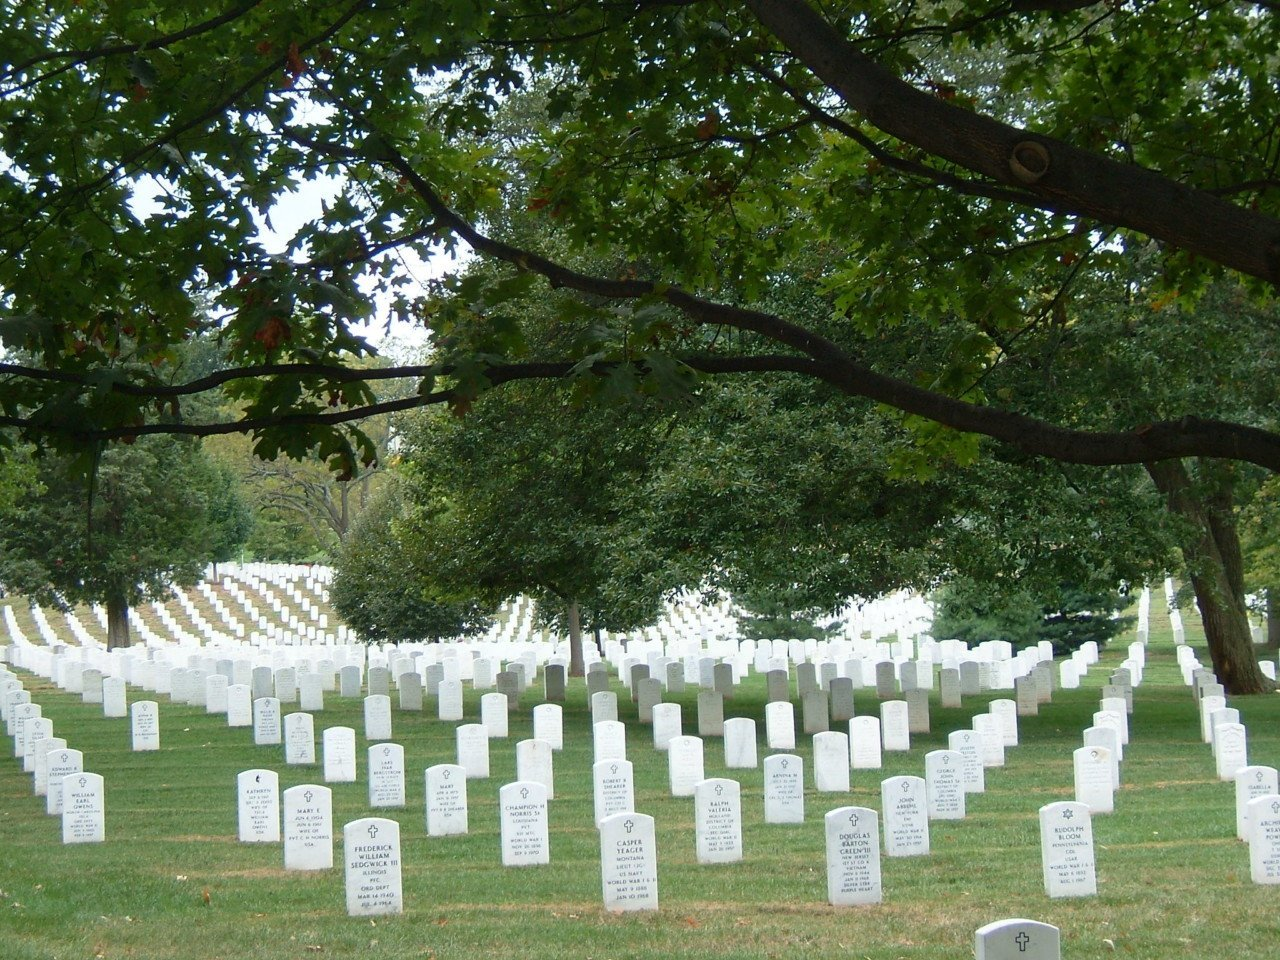 Cimitero arlington, Virginia, America, Washington dc, 24 ore a washington DC